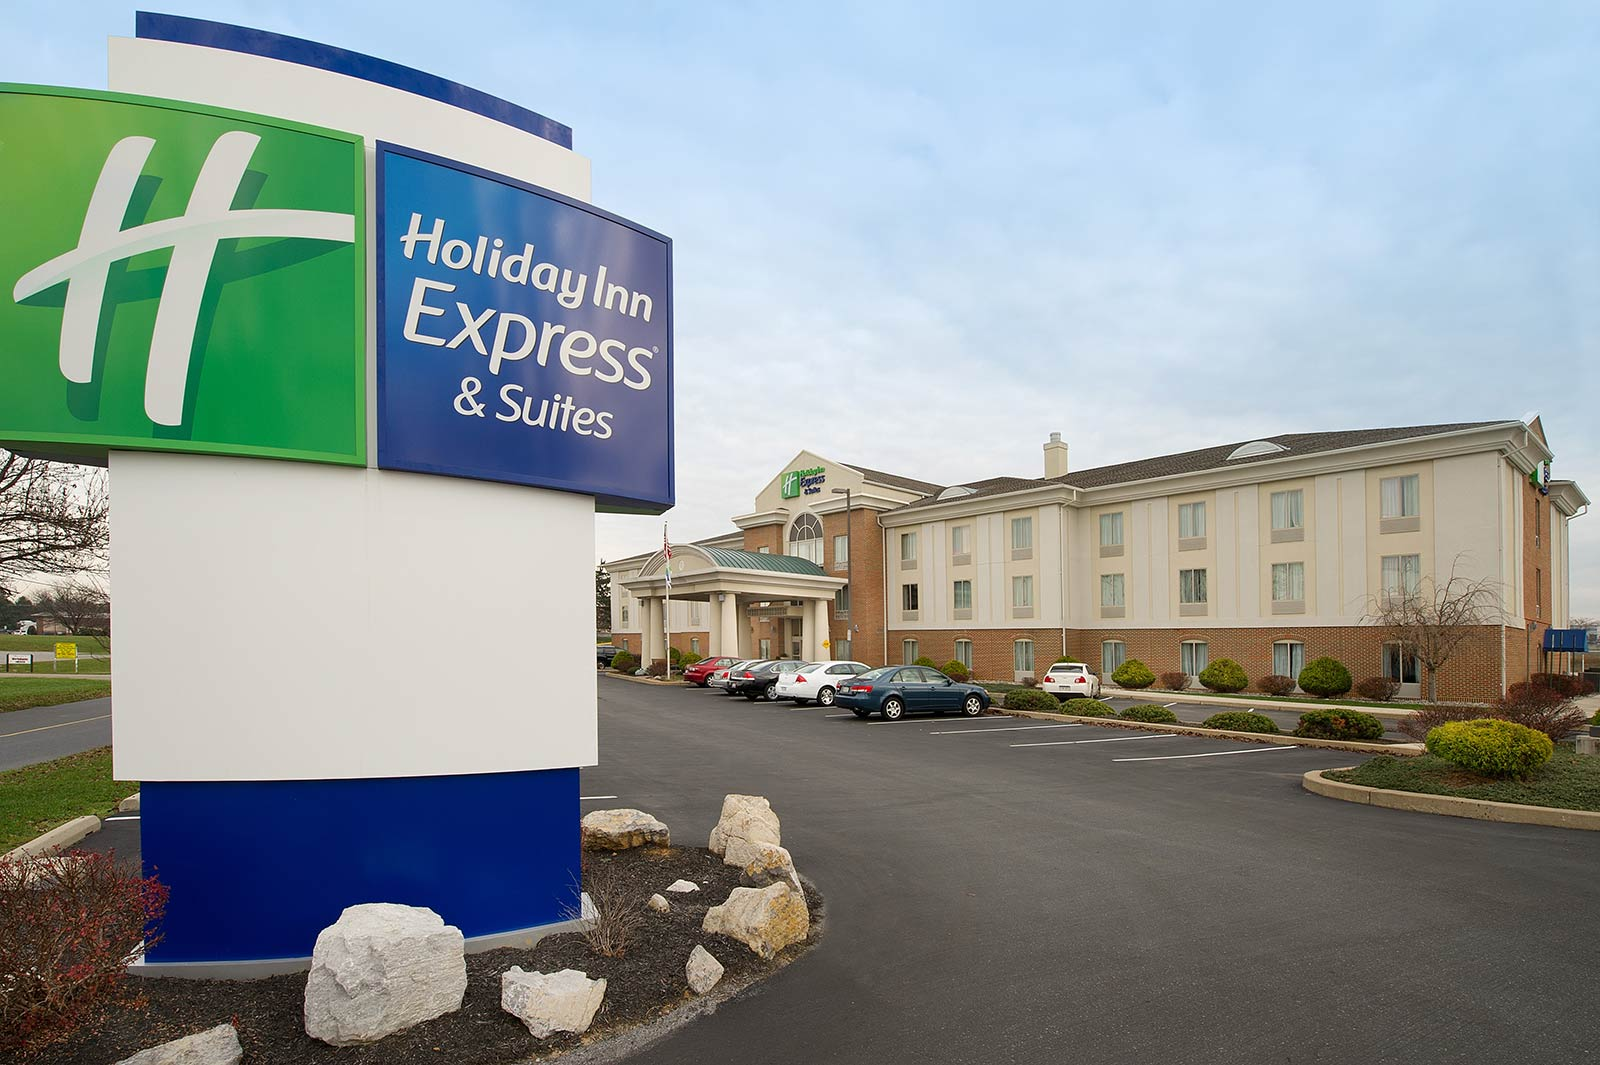 Chambersburg Hotel Deals And Packages Specials At Holiday Inn Express